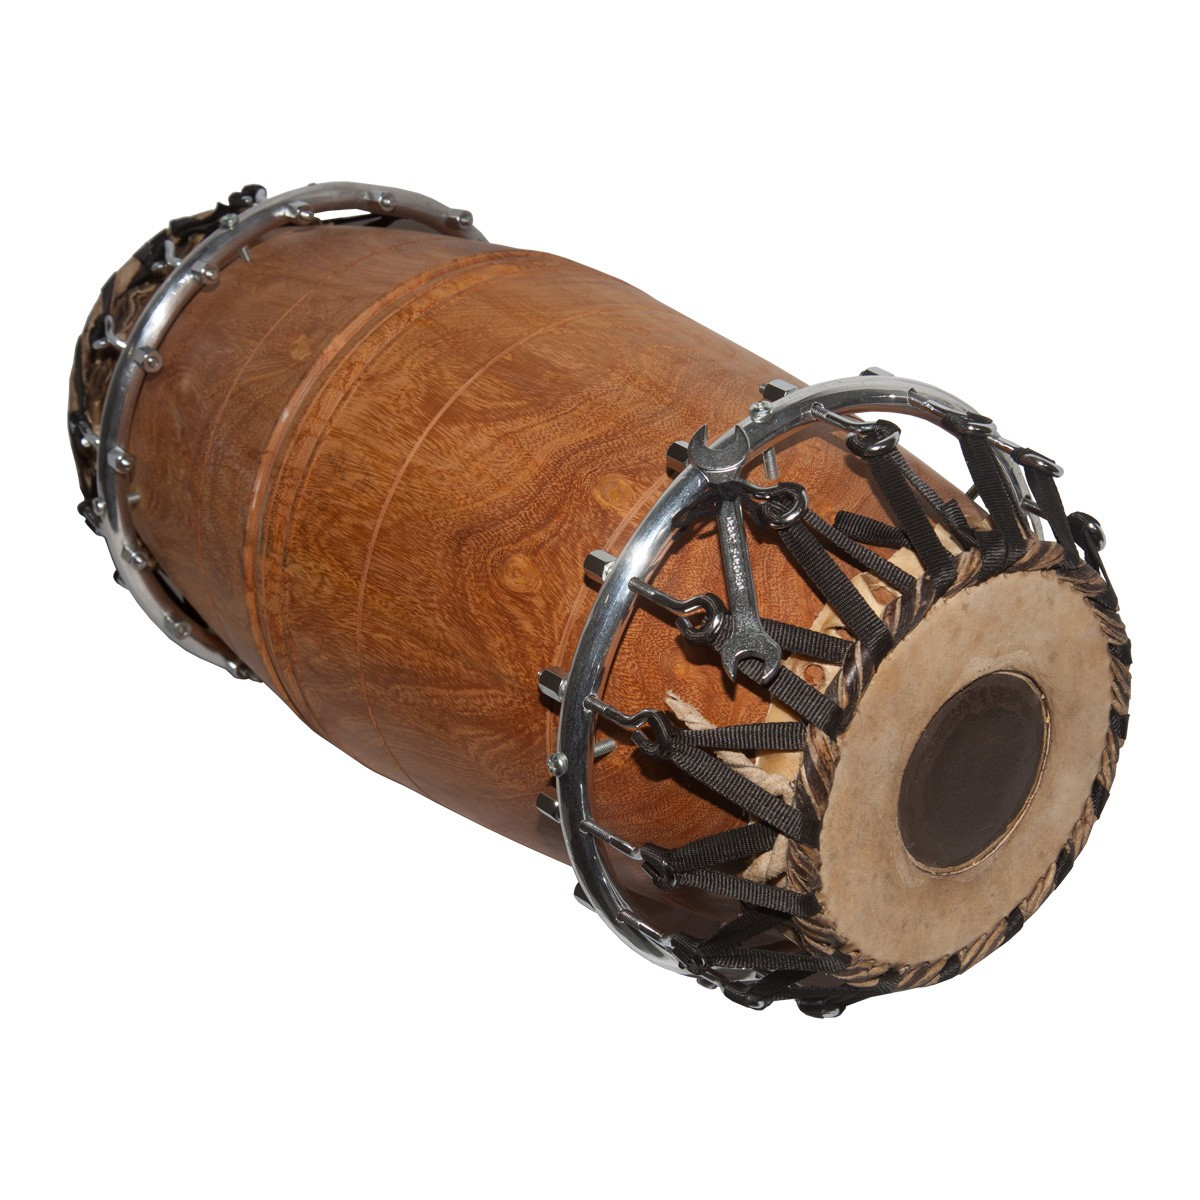 RohanRhythm High Pitch Jackwood Mridangam *Blemished